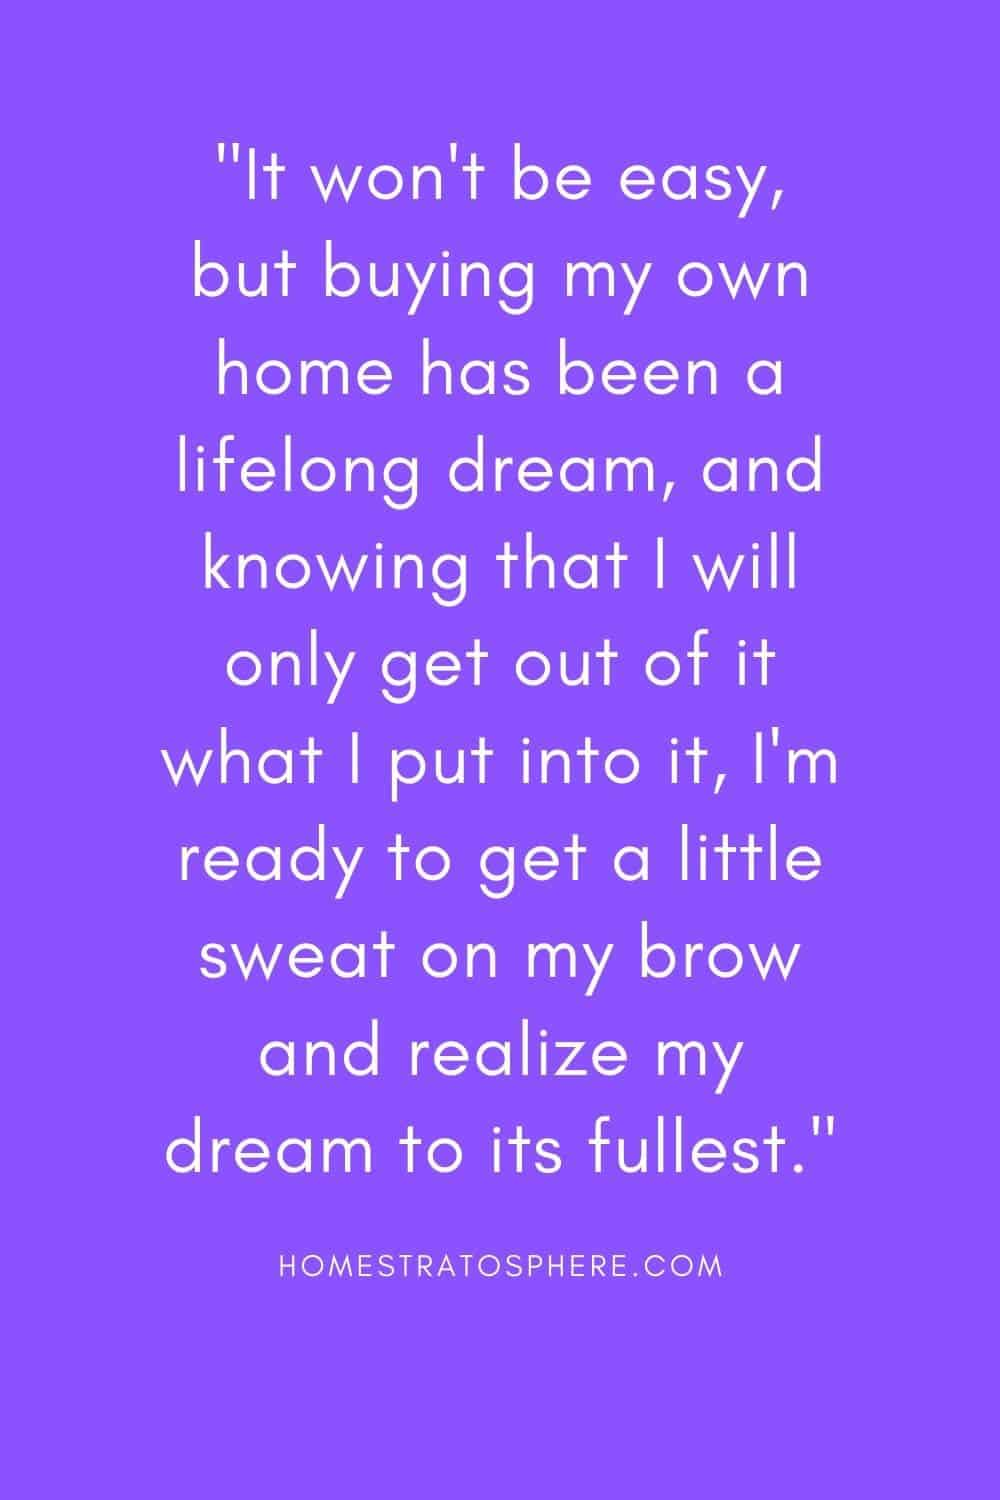 """It won't be easy, but buying my own home has been a lifelong dream, and knowing that I will only get out of it what I put into it, I'm ready to get a little sweat on my brow and realize my dream to its fullest."""